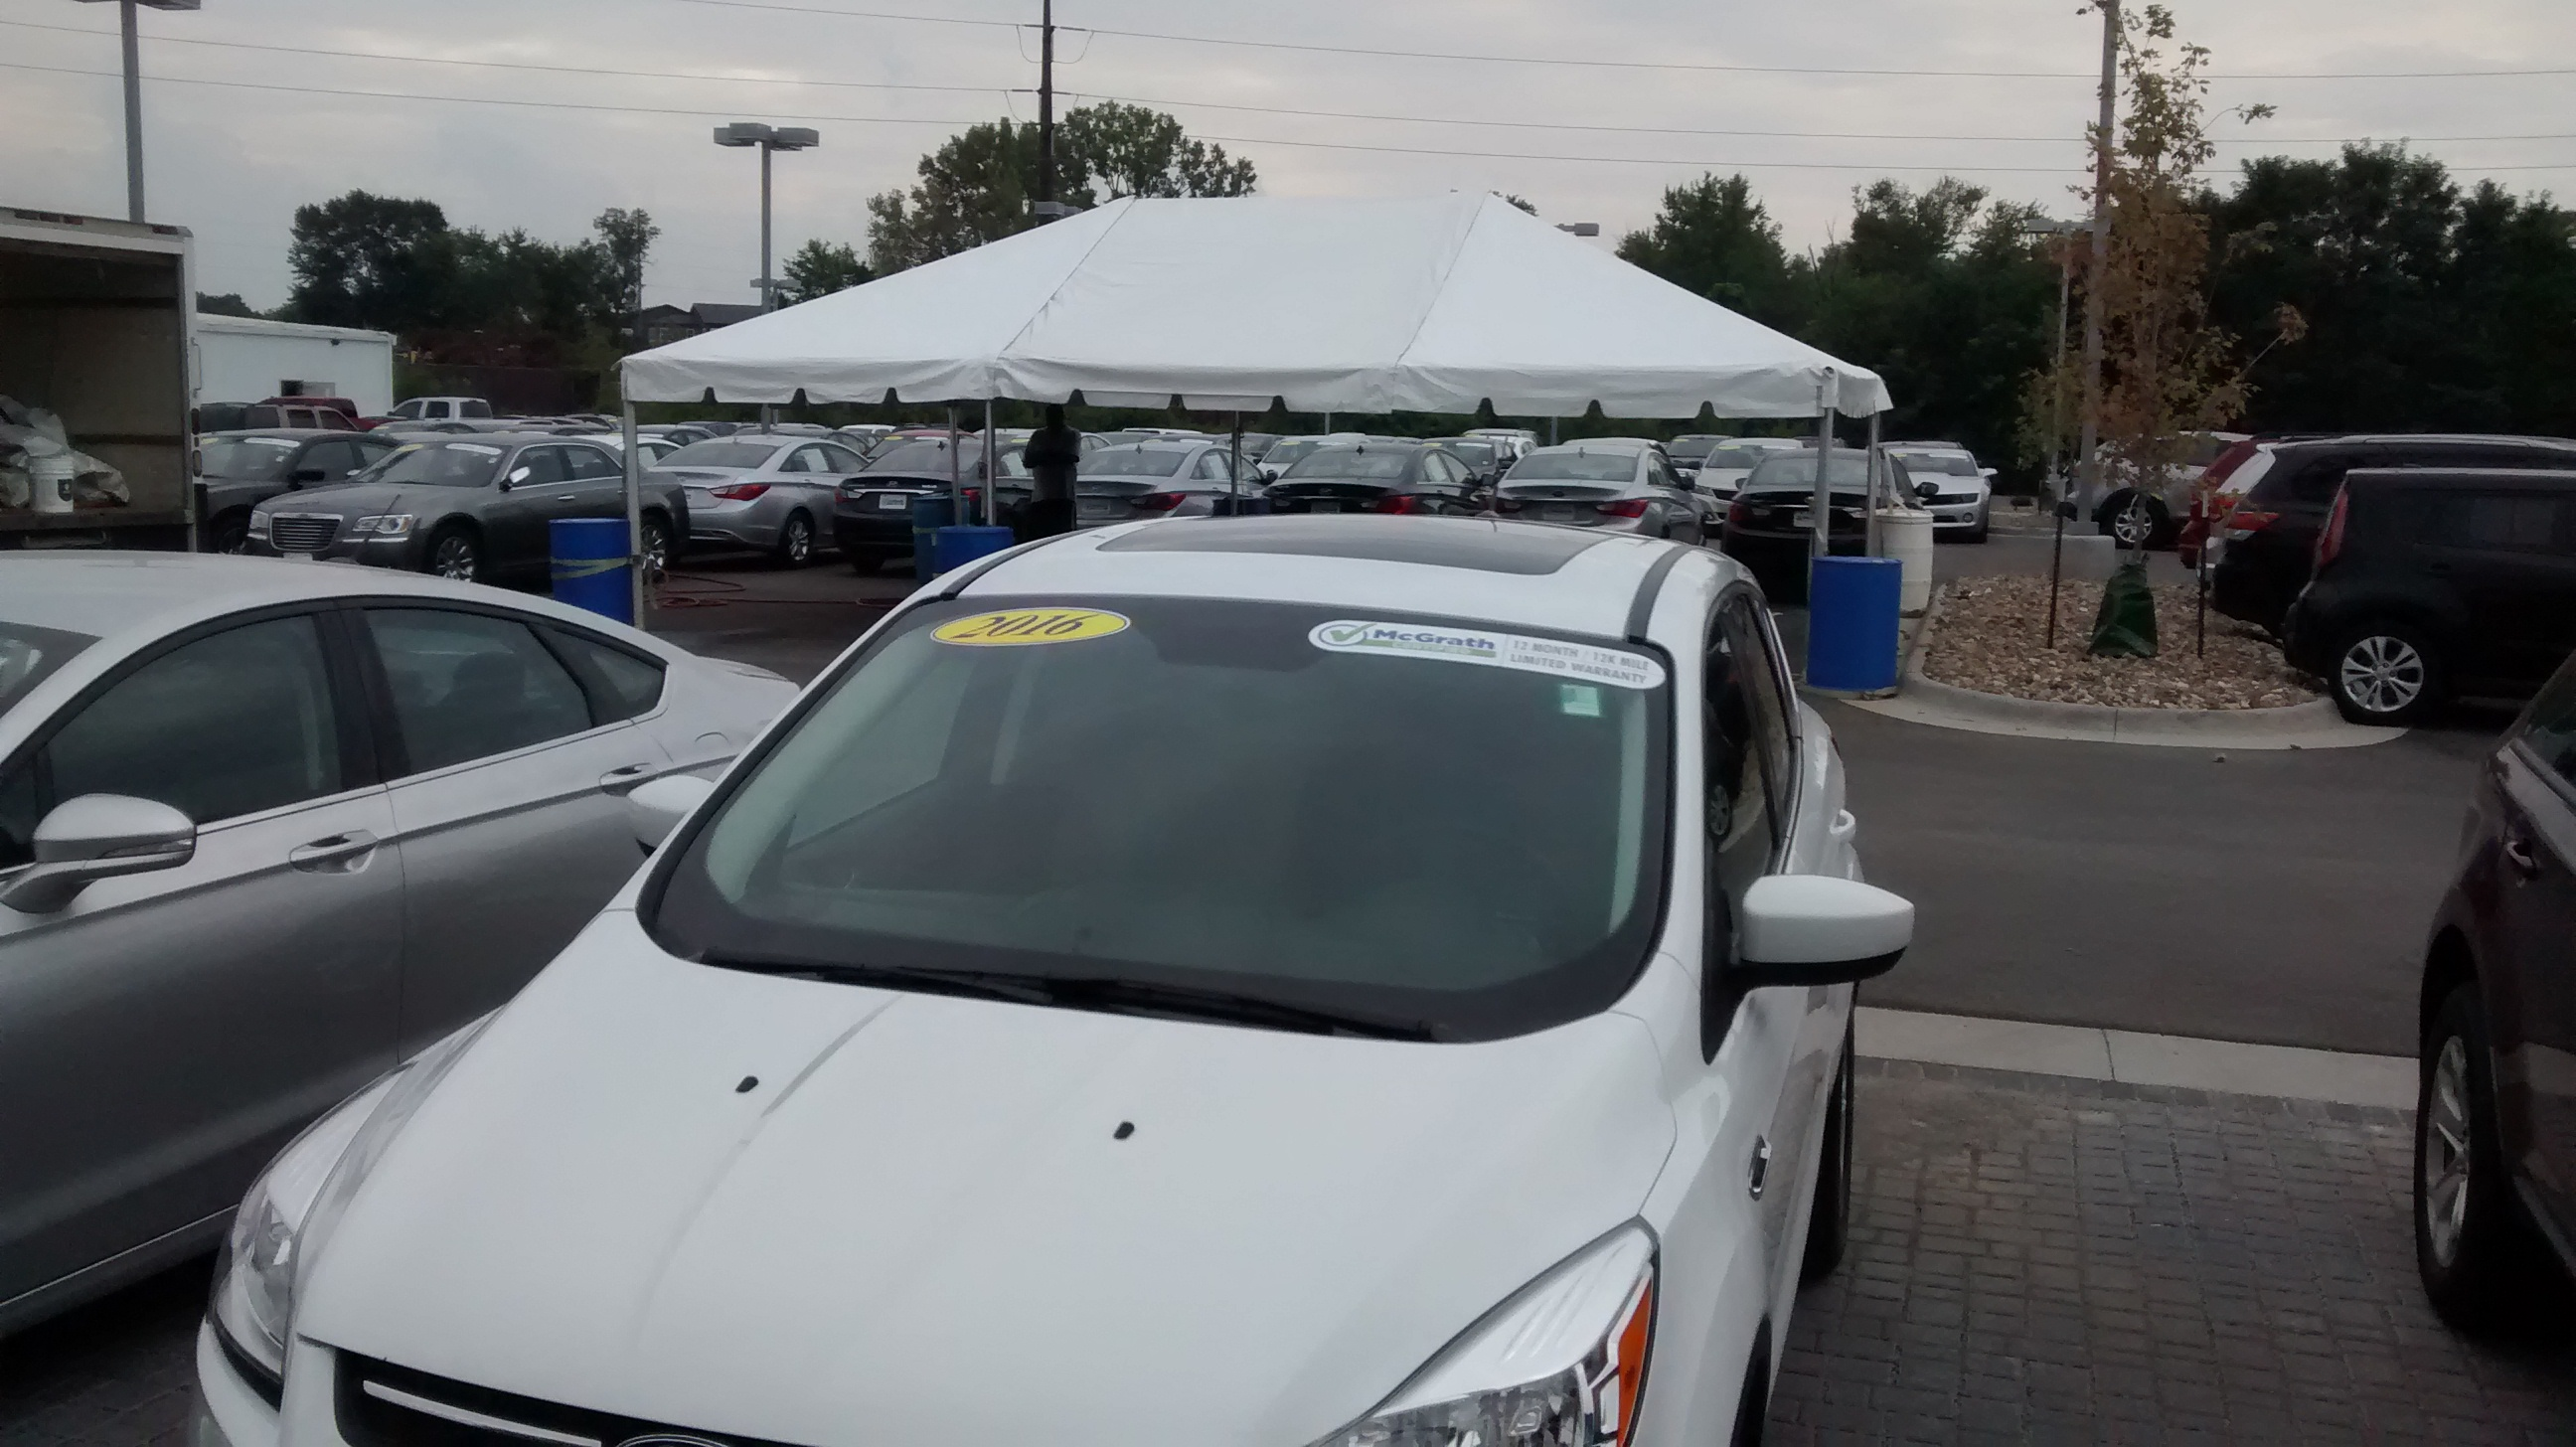 View by cars at 20′ x 30′ frame tent for the grand re-opening at Coralville Used Car Superstore